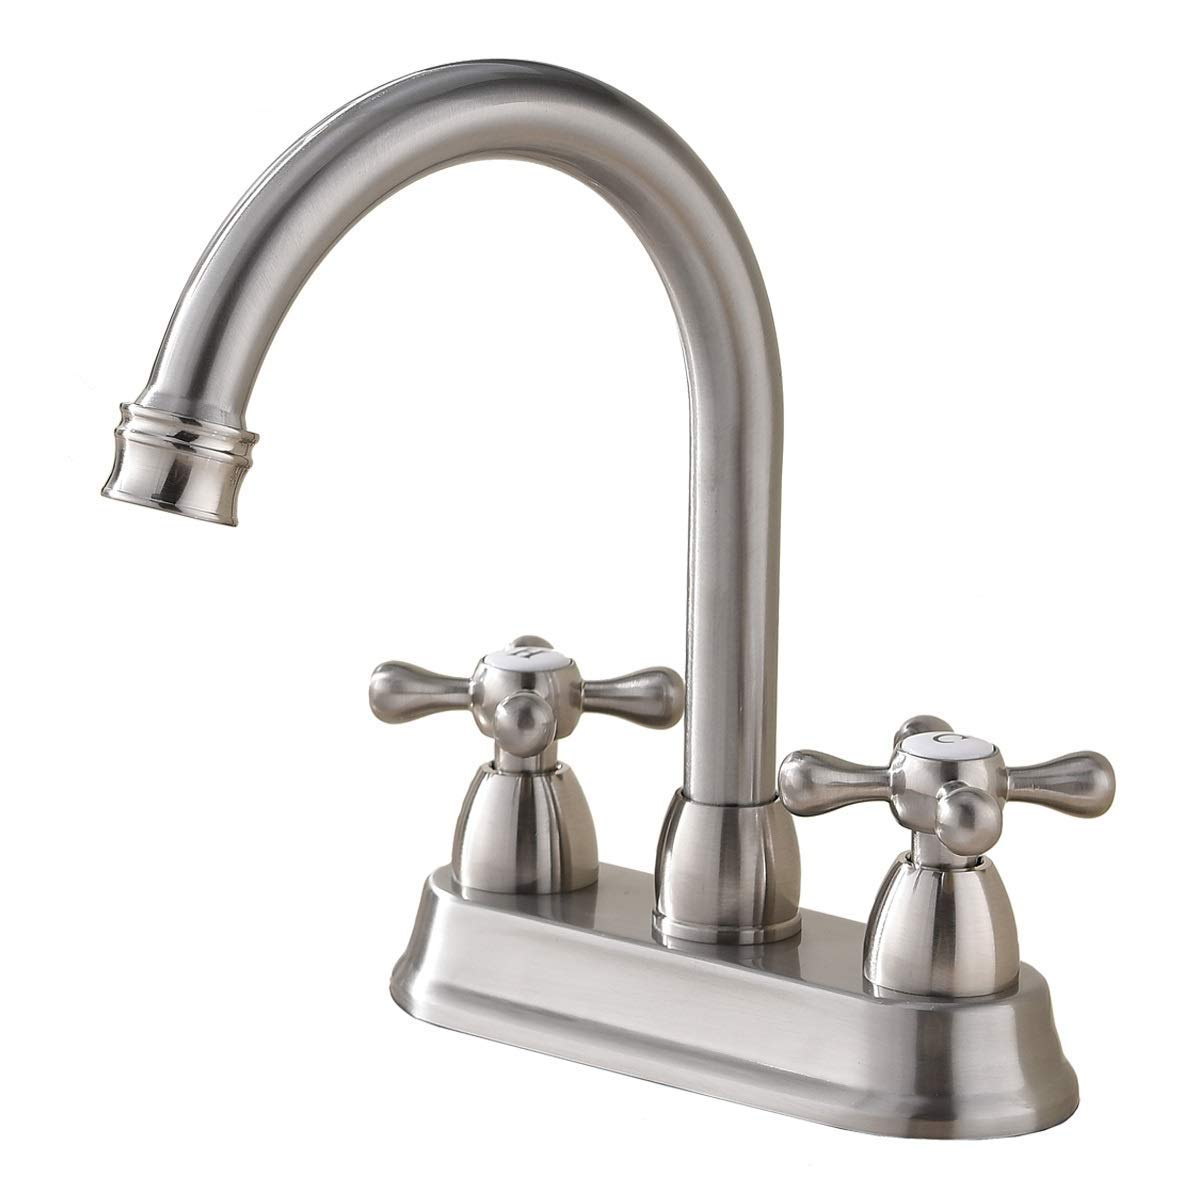 SHACO Best Commercial Brushed Nickel 2 Handle Centerset bathroom faucet, Stainless Steel Bathroom Sink Faucet by SHACO